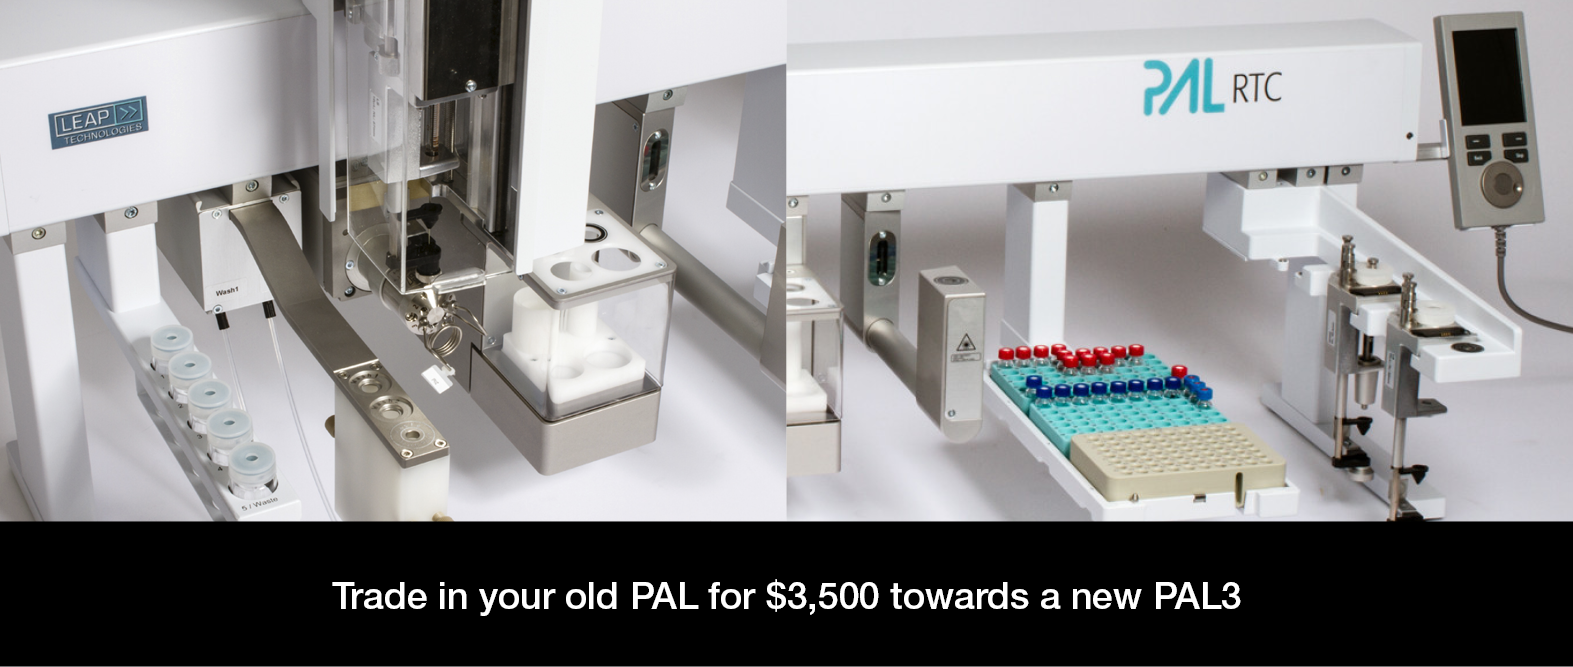 Trade in your old PAL for a new PAL3